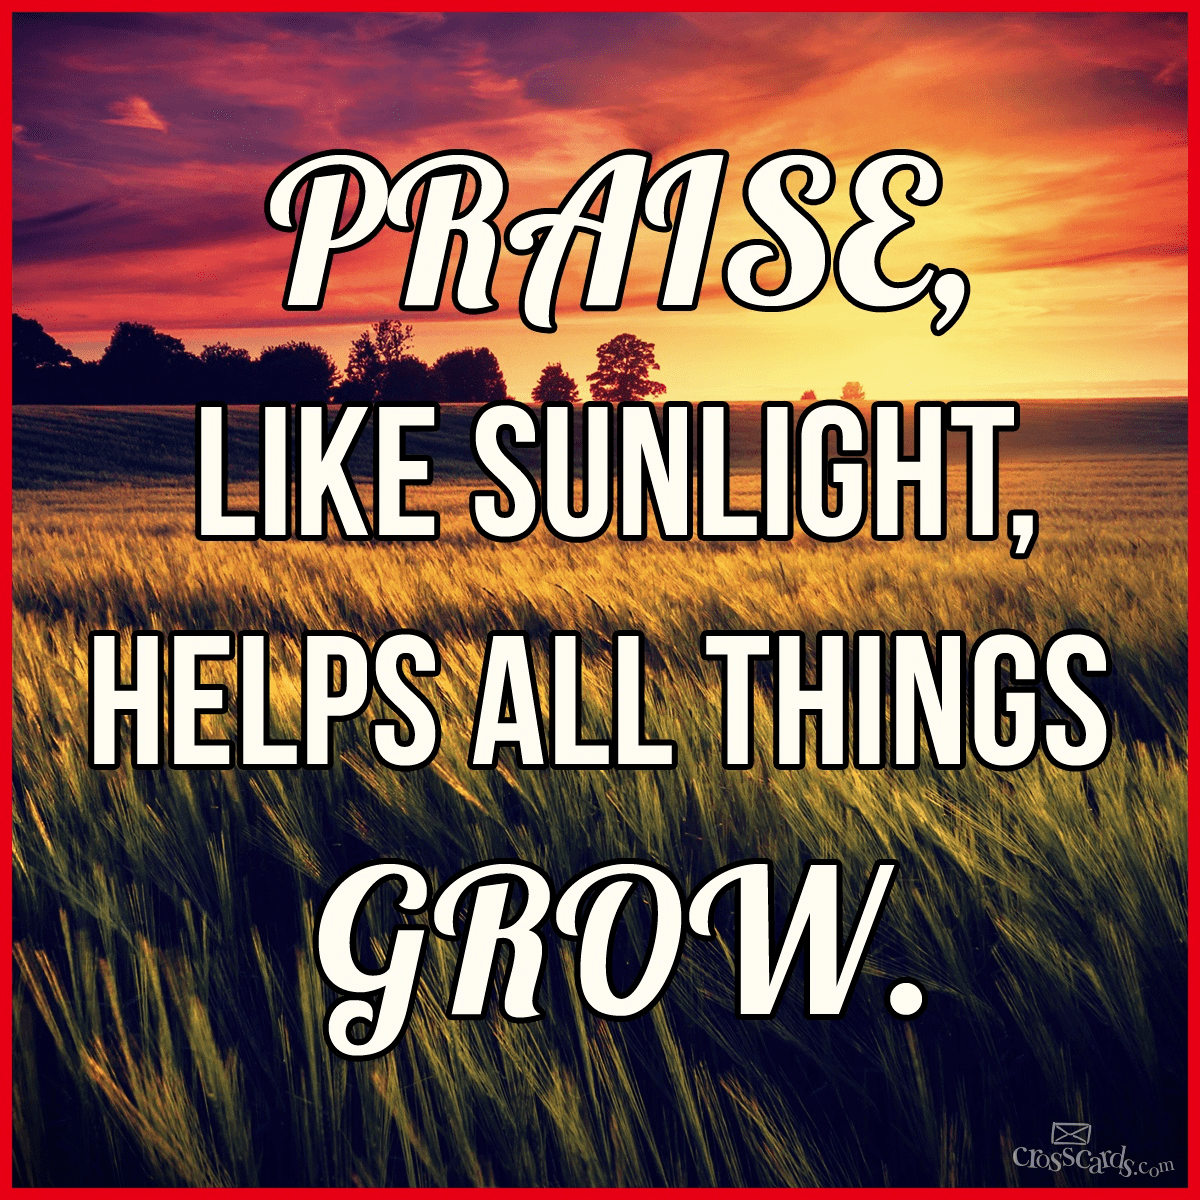 Praise, Like Sunlight, Helps All Things Grow